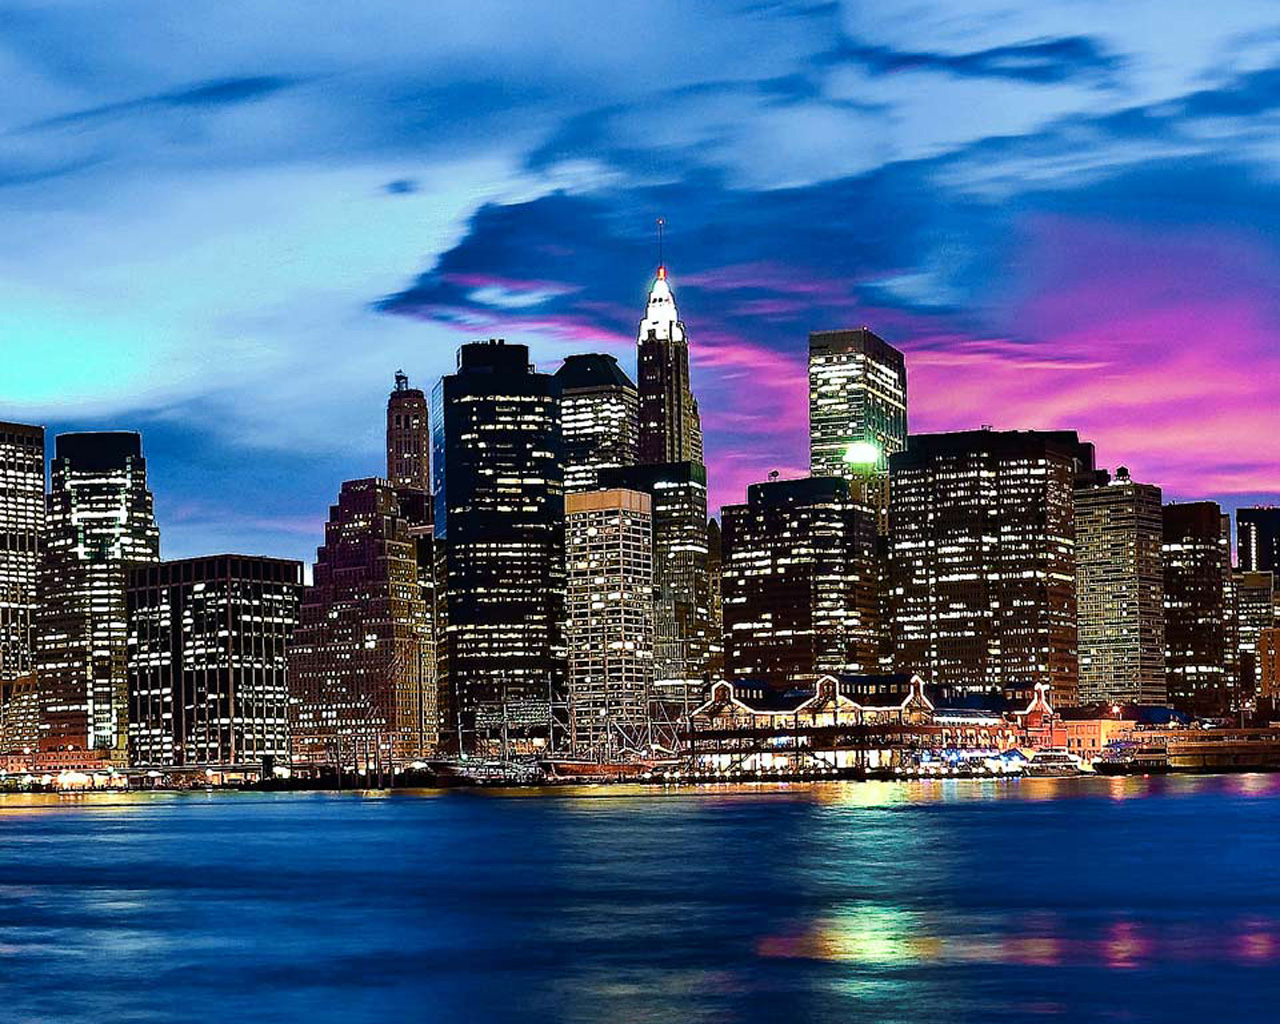 New york skyline wallpaper wallpapersafari - New york skyline computer wallpaper ...